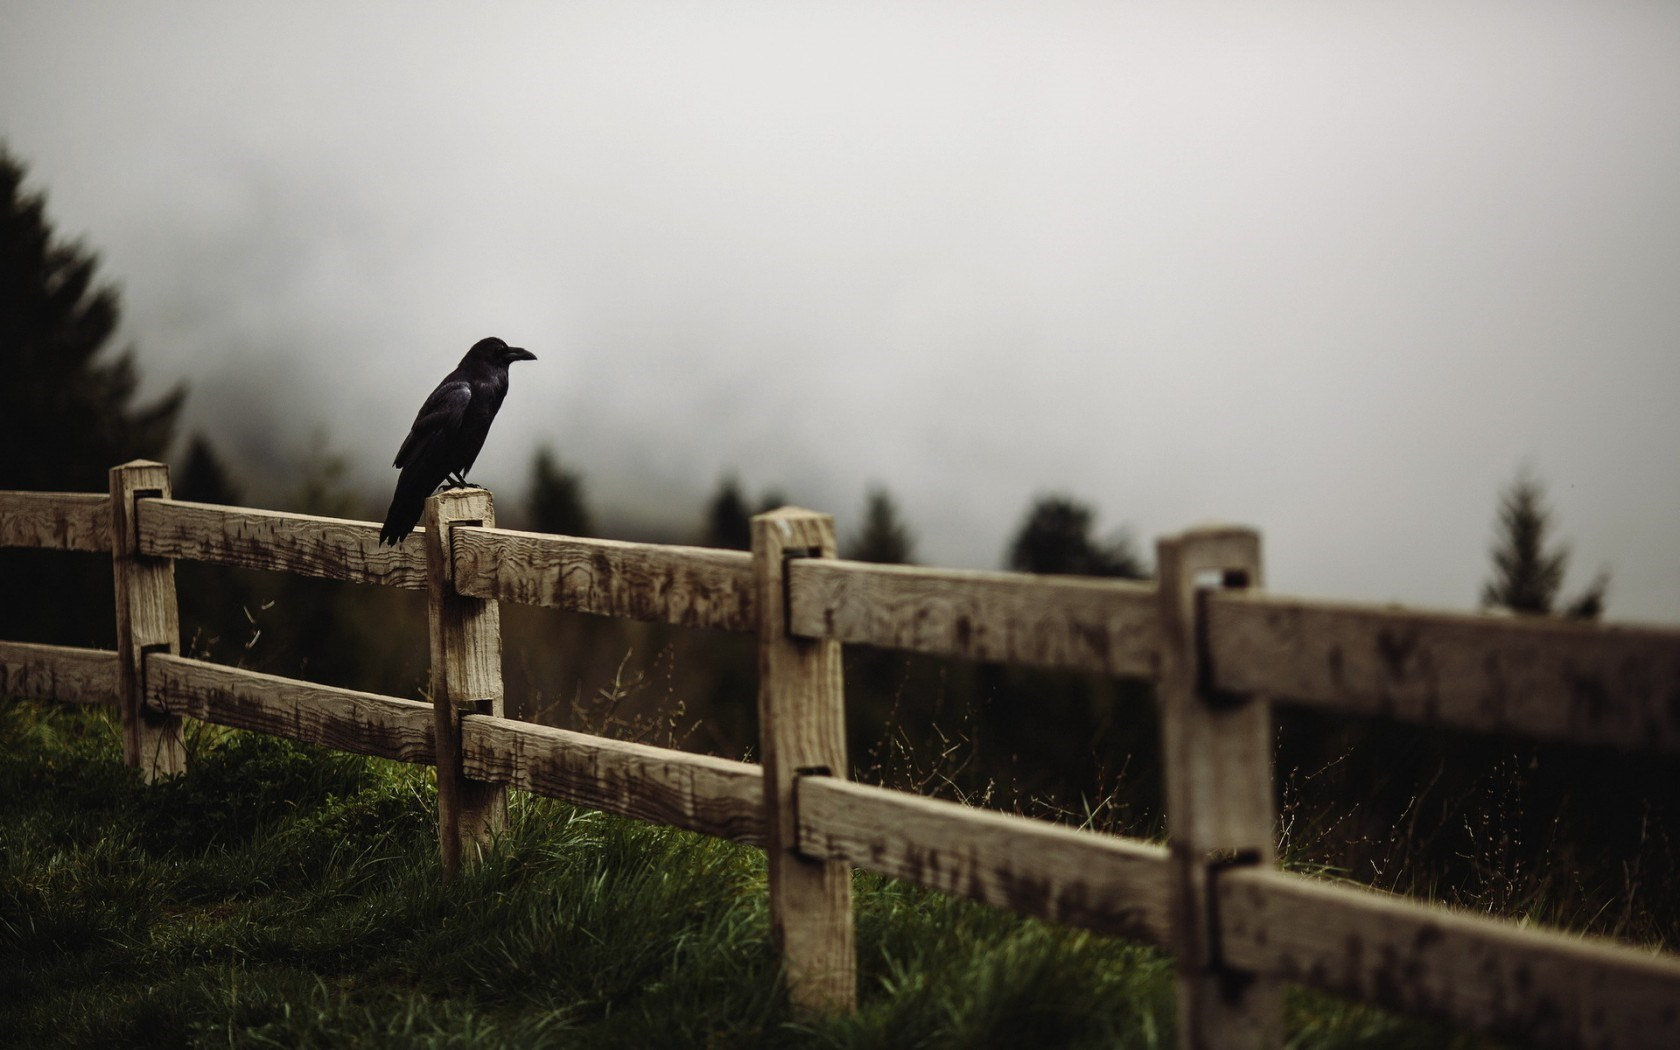 Raven Bird Wooden Fence Forest Fog HD Wallpaper